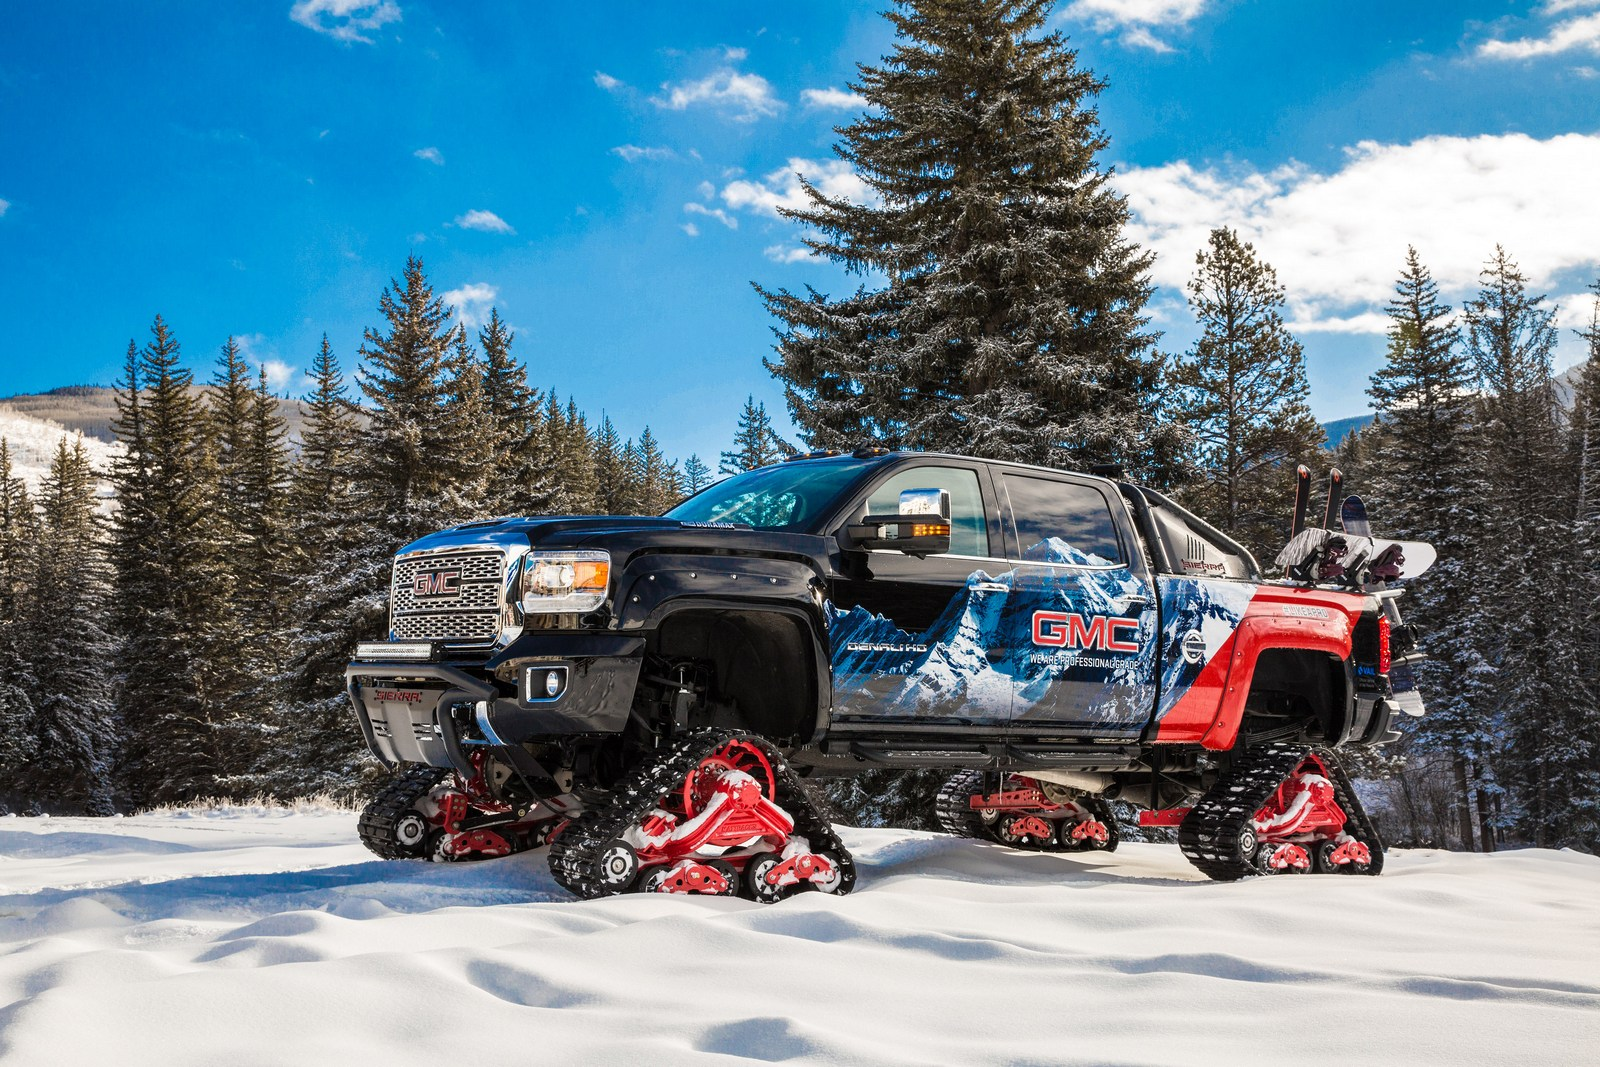 2018 GMC Sierra HD Takes On Snow-covered Mountains With ...